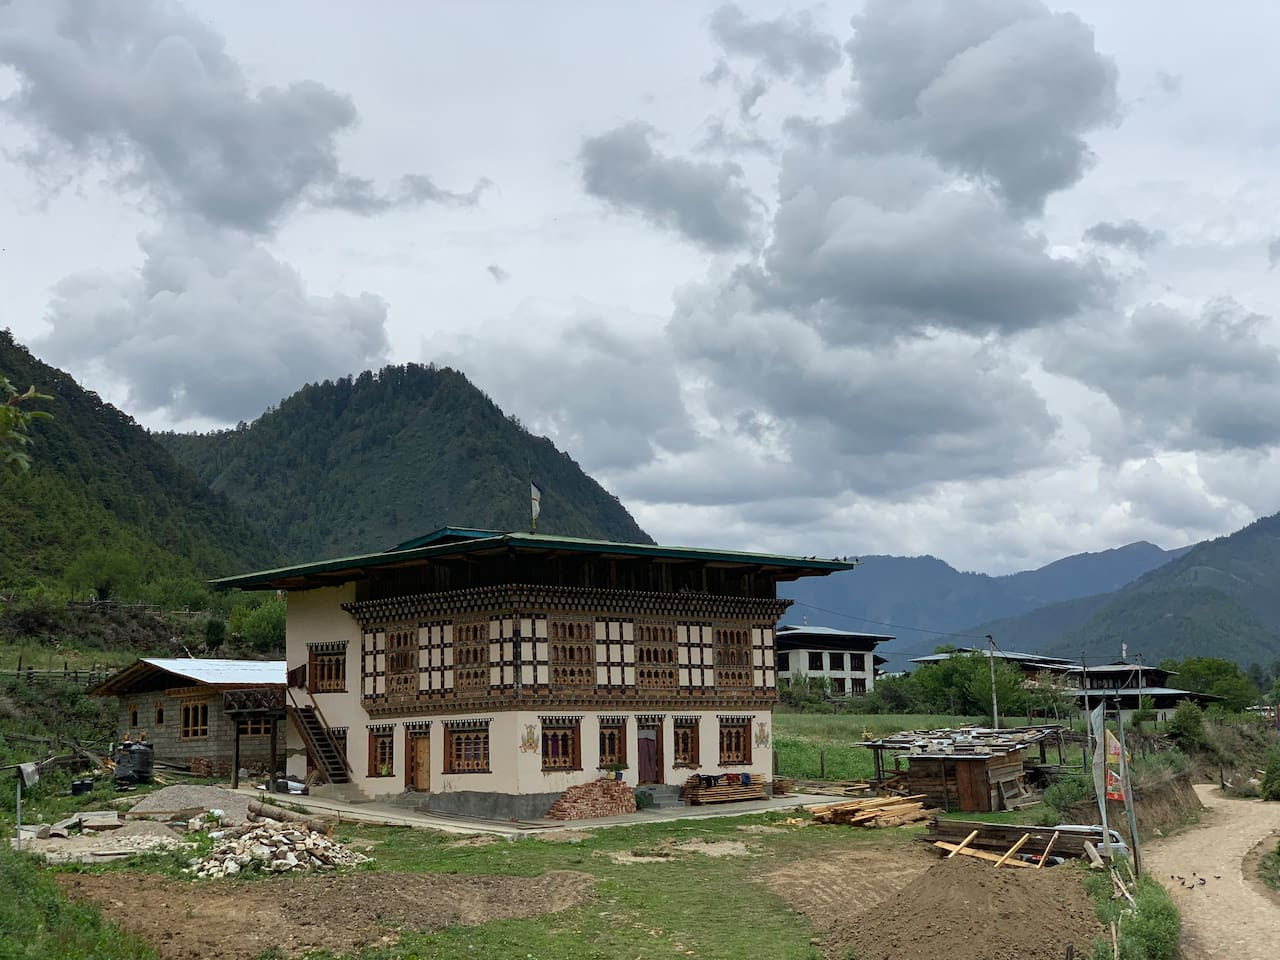 Phub Dem Village Home Stay- for a true Bhutanese village experience Mrs. Phub Dem is a certified village home stay provider, registered with the Tourism Council of Bhutan. She has been providing home stay service since 2017.